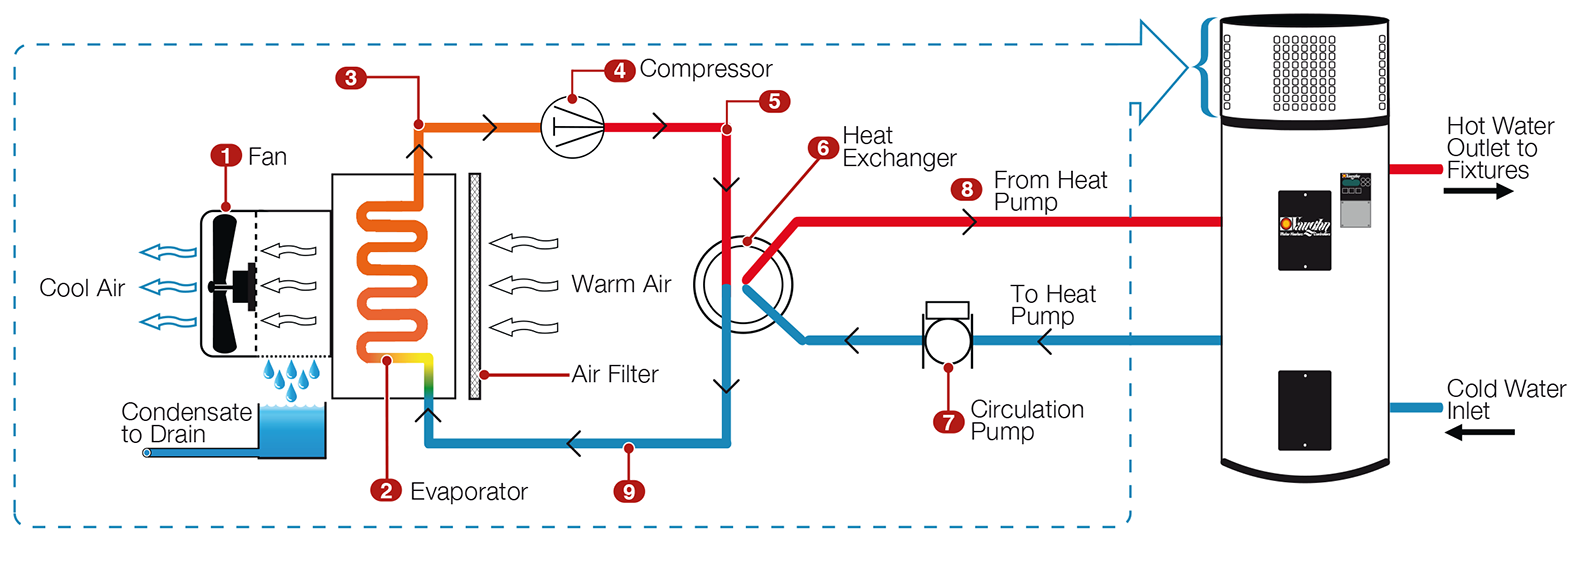 Trane Electric Heater With Fan Not Lossing Wiring Diagram For Furnace Camstat Control Unit Model Numbers Heaters